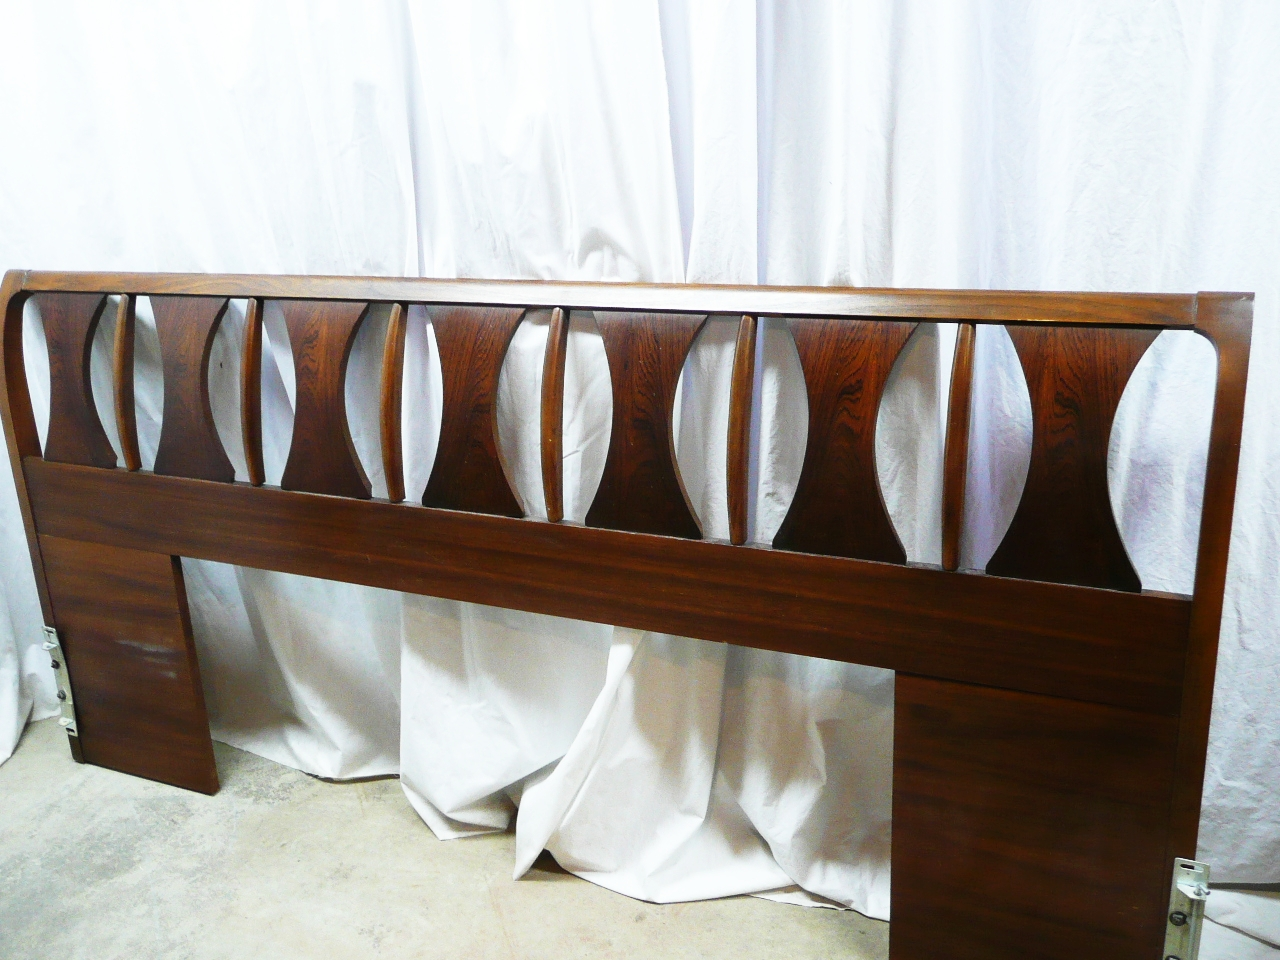 Used mid century modern furniture for sale - Modern Mid Century Danish Vintage Furniture Shop Used